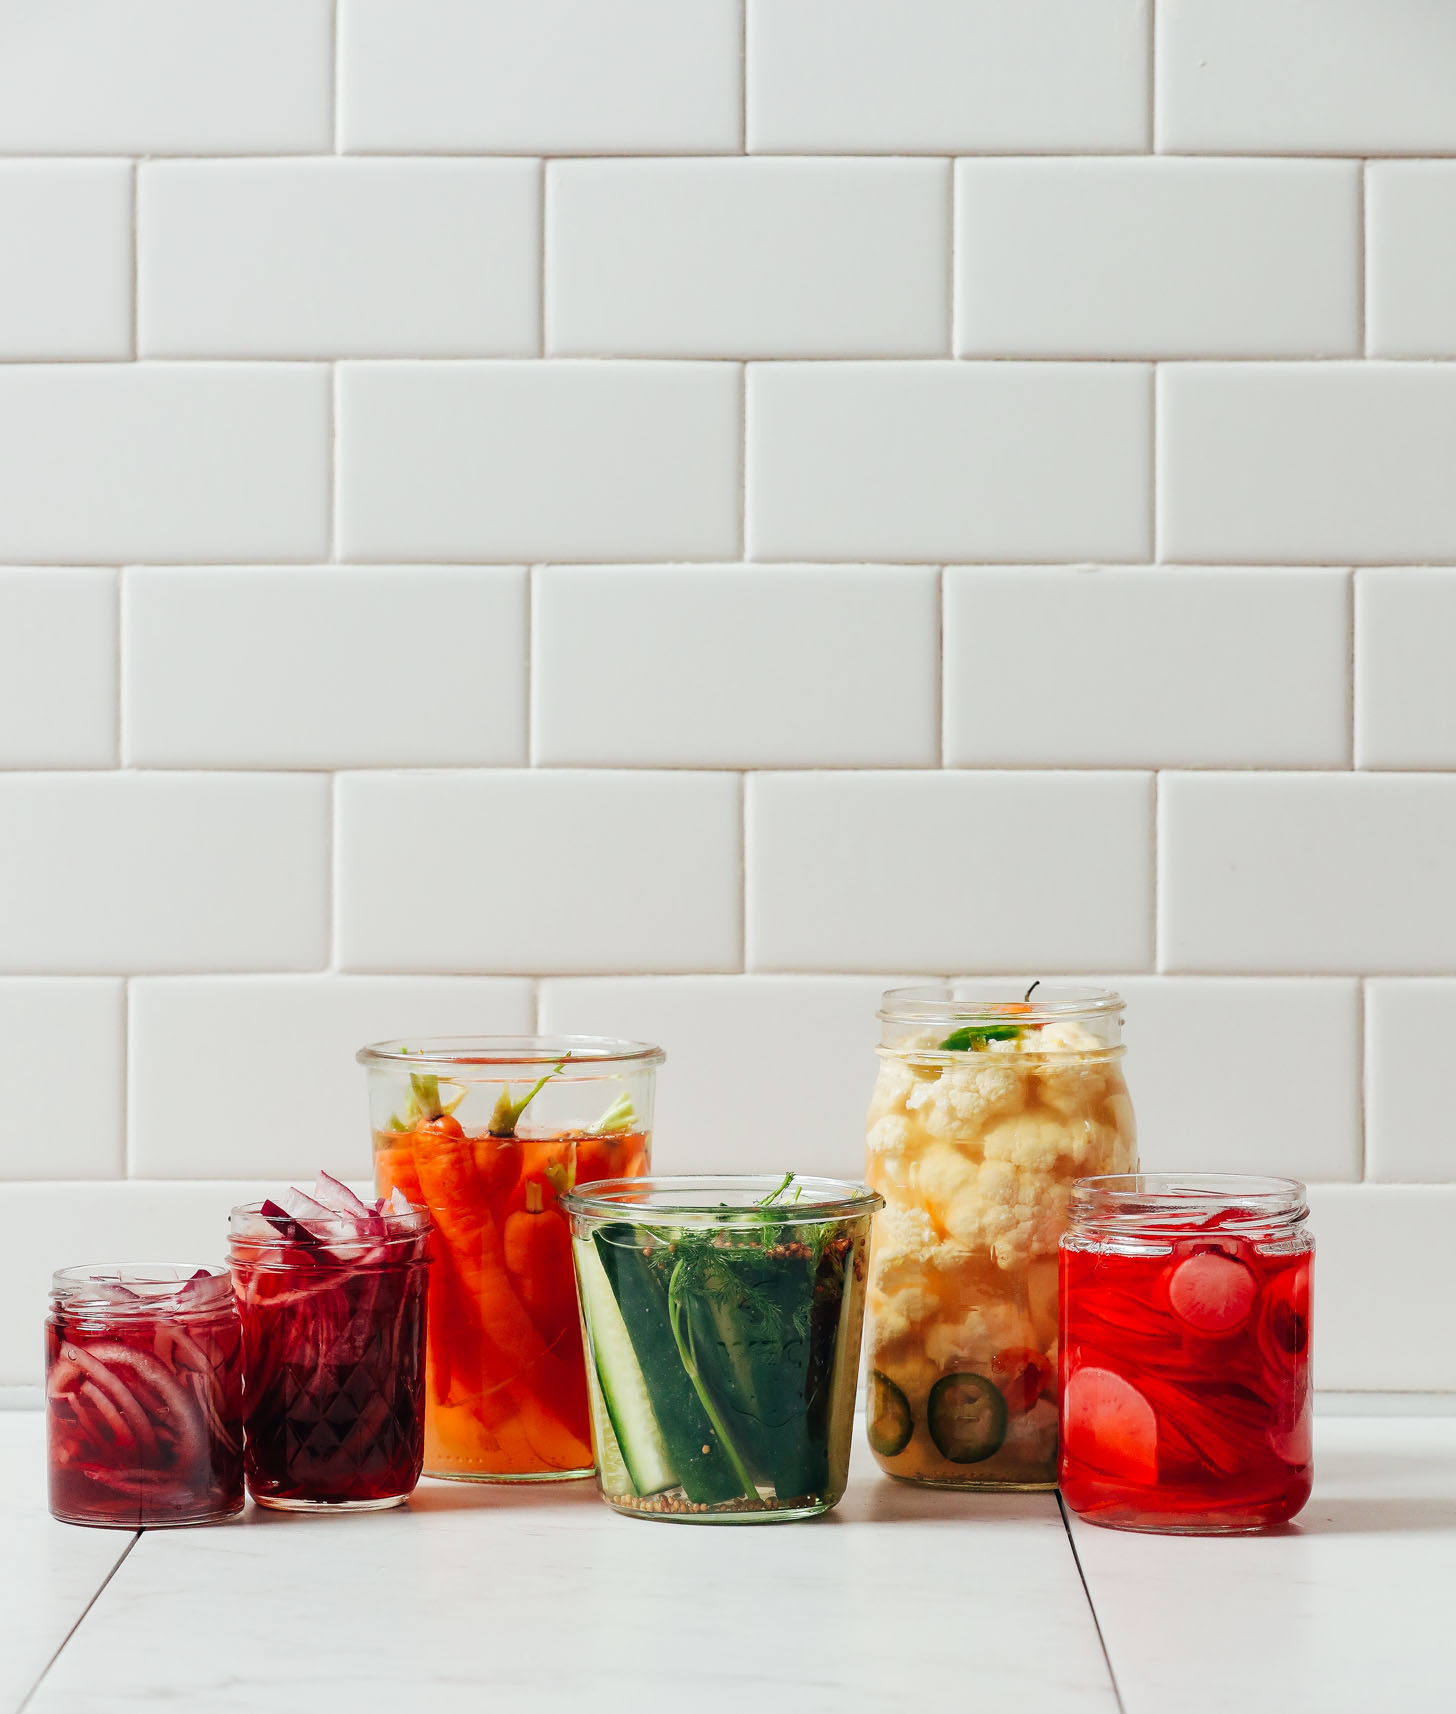 Jars of Quick Pickled Vegetables including onion, carrot, cucumber, cauliflower, and radish